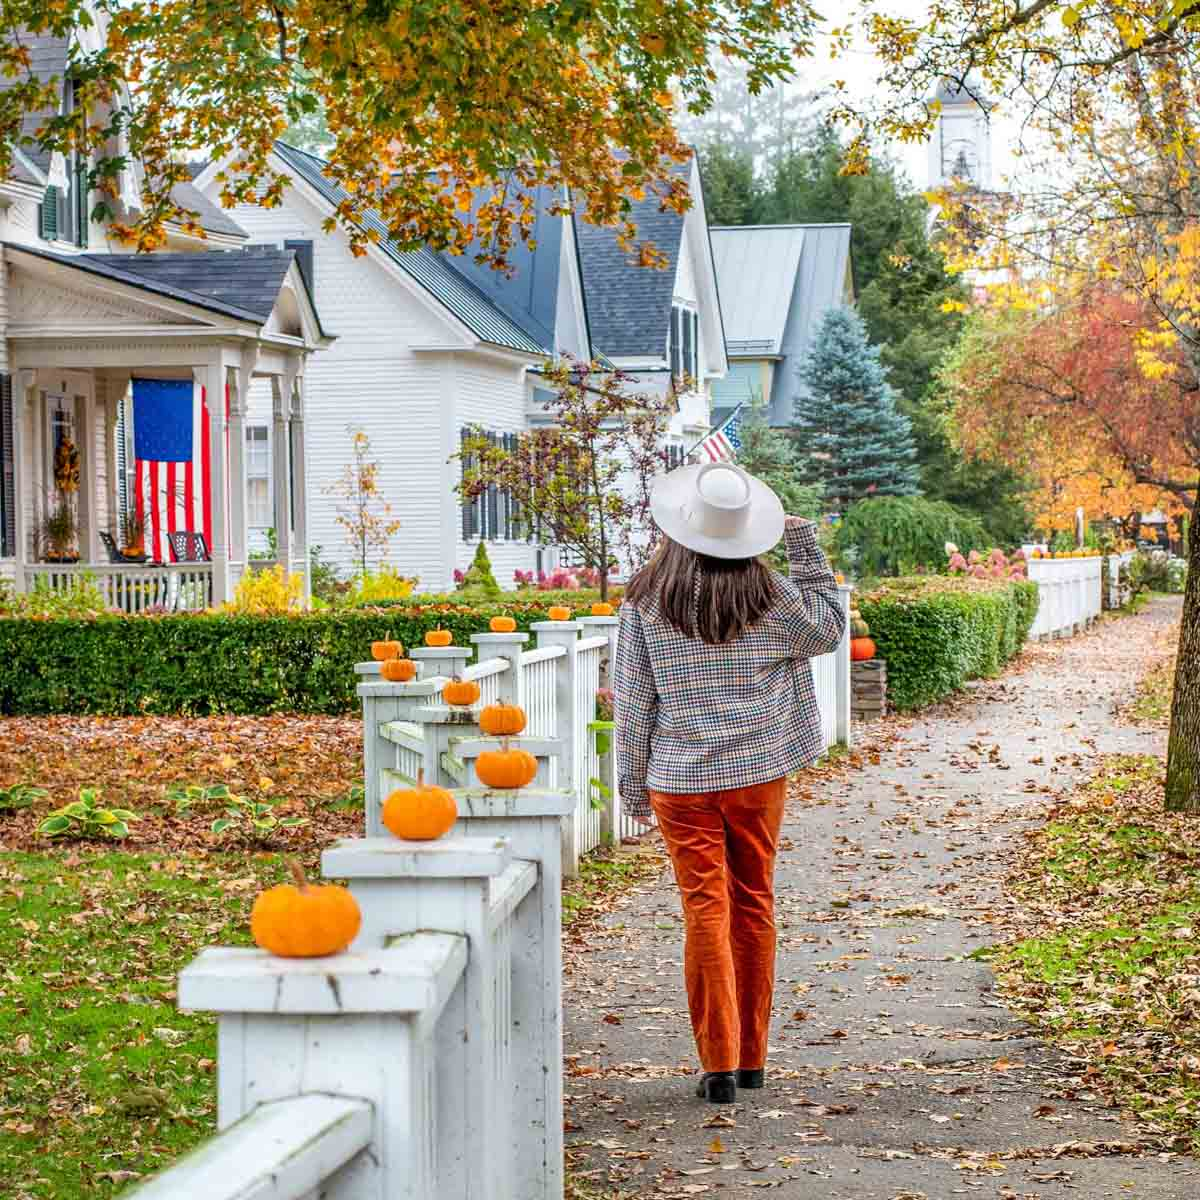 Woman walking down street in Woodstock, Vermont that is decorated with pumpkins for Halloween